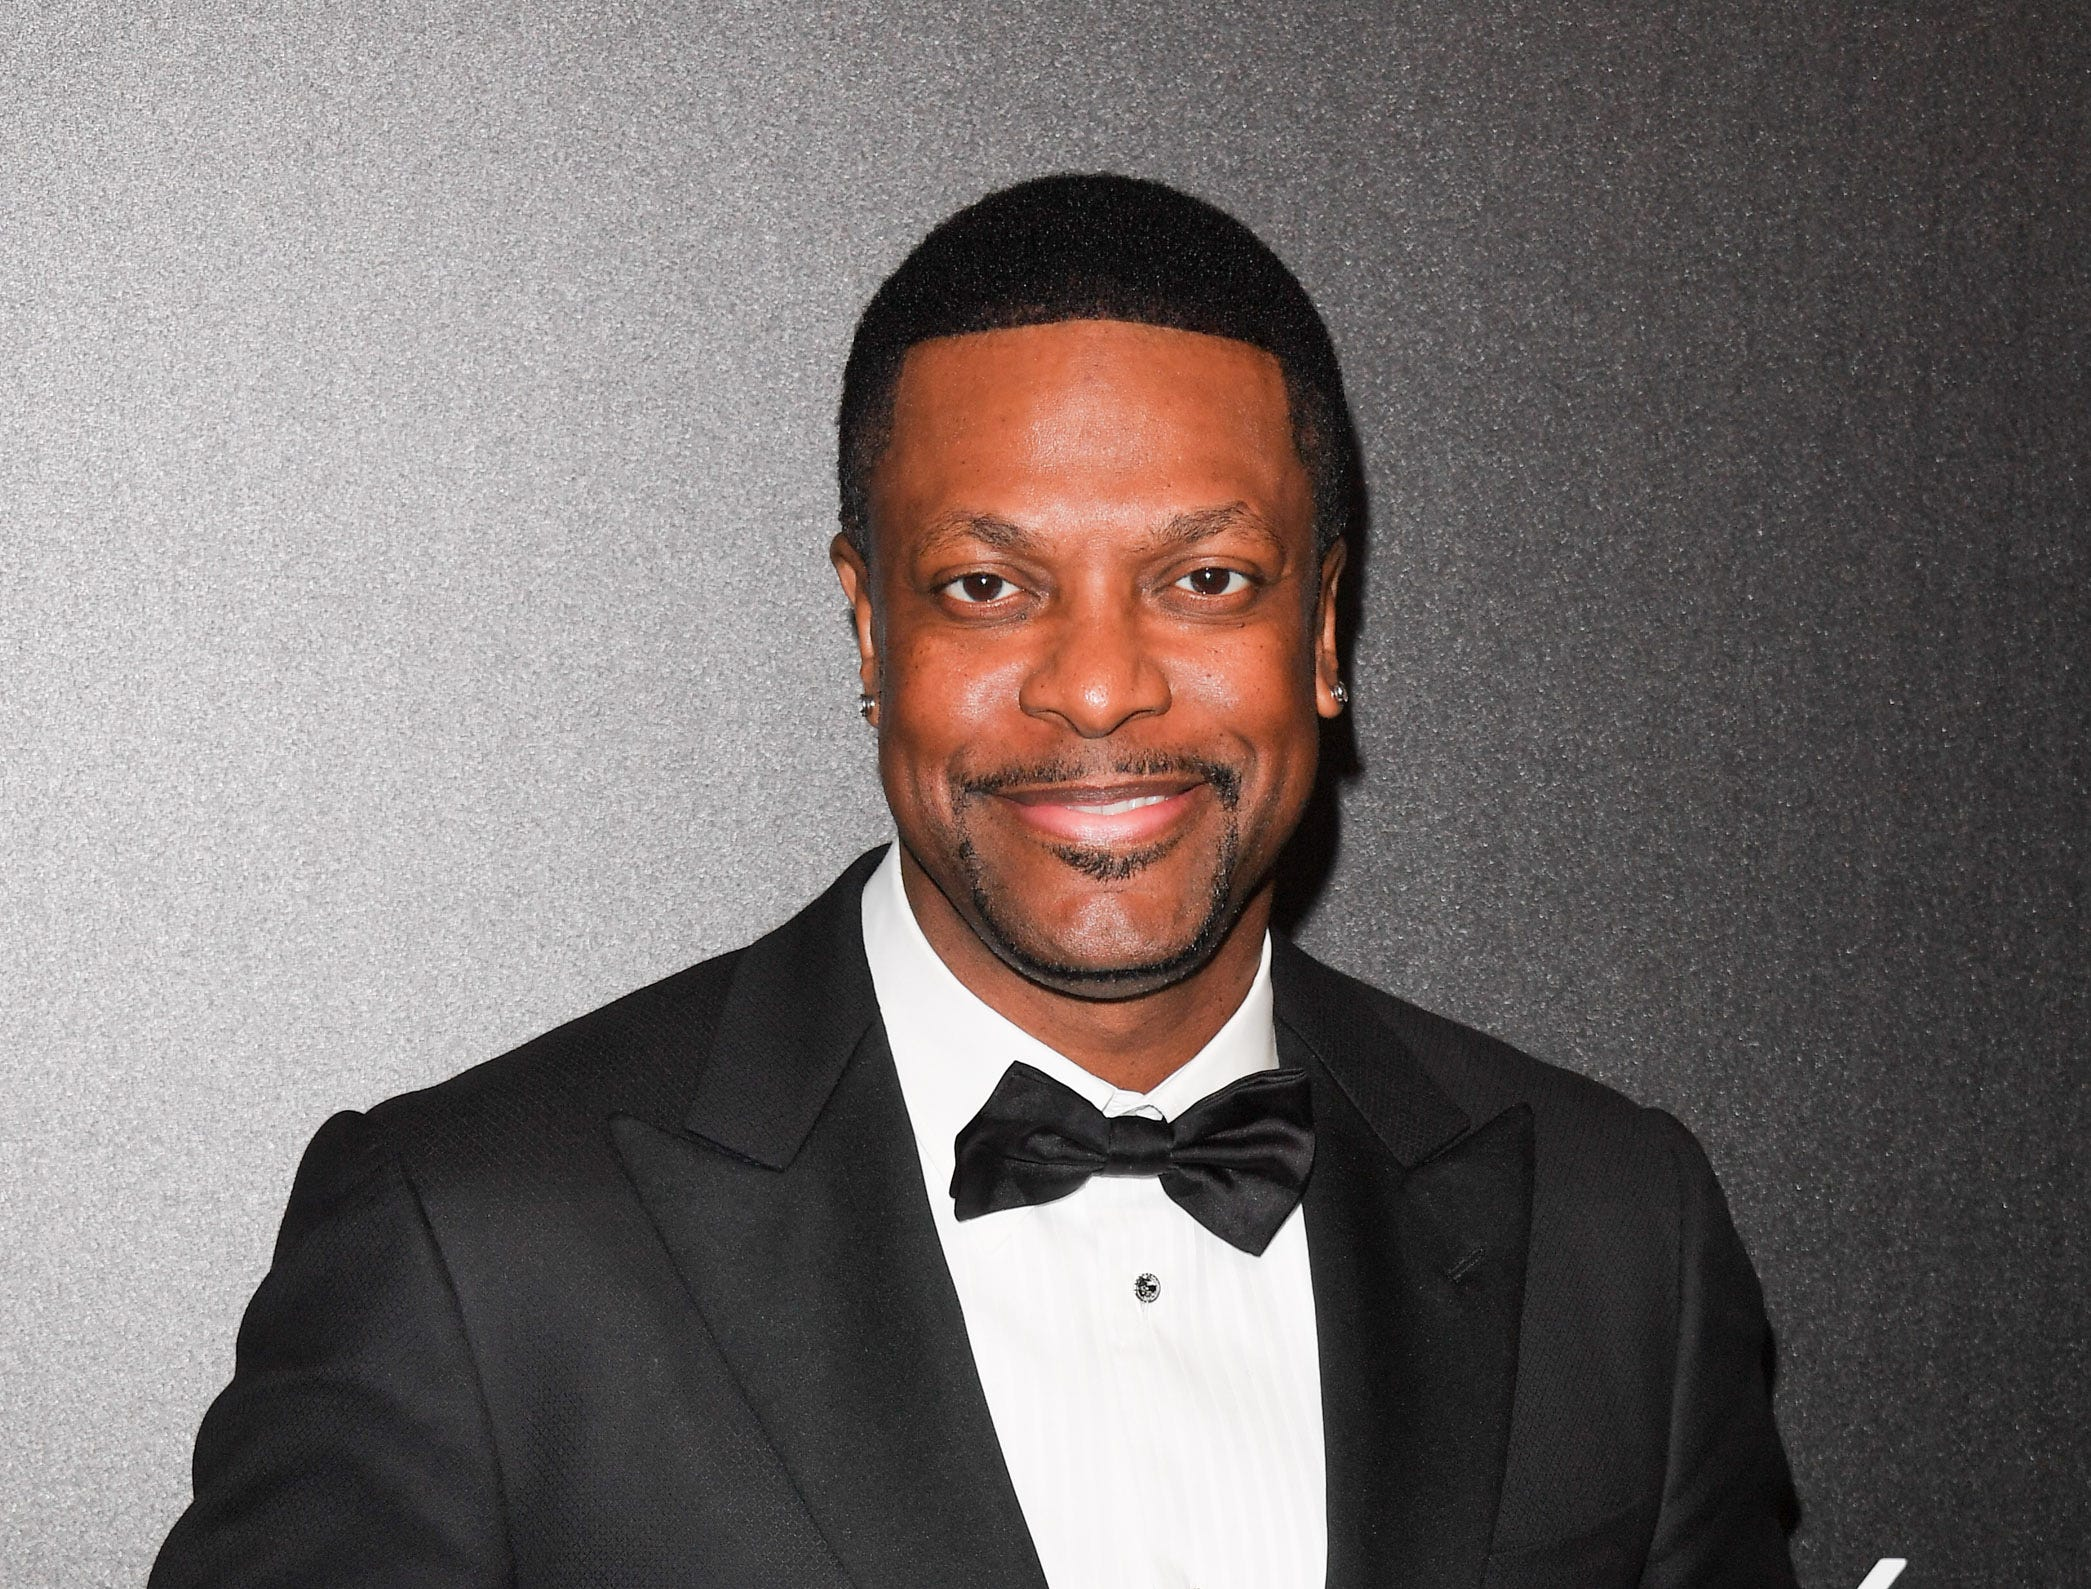 Chris Tucker attends the Chopard Party during the 72nd annual Cannes Film Festival on May 17, 2019 in Cannes, France.